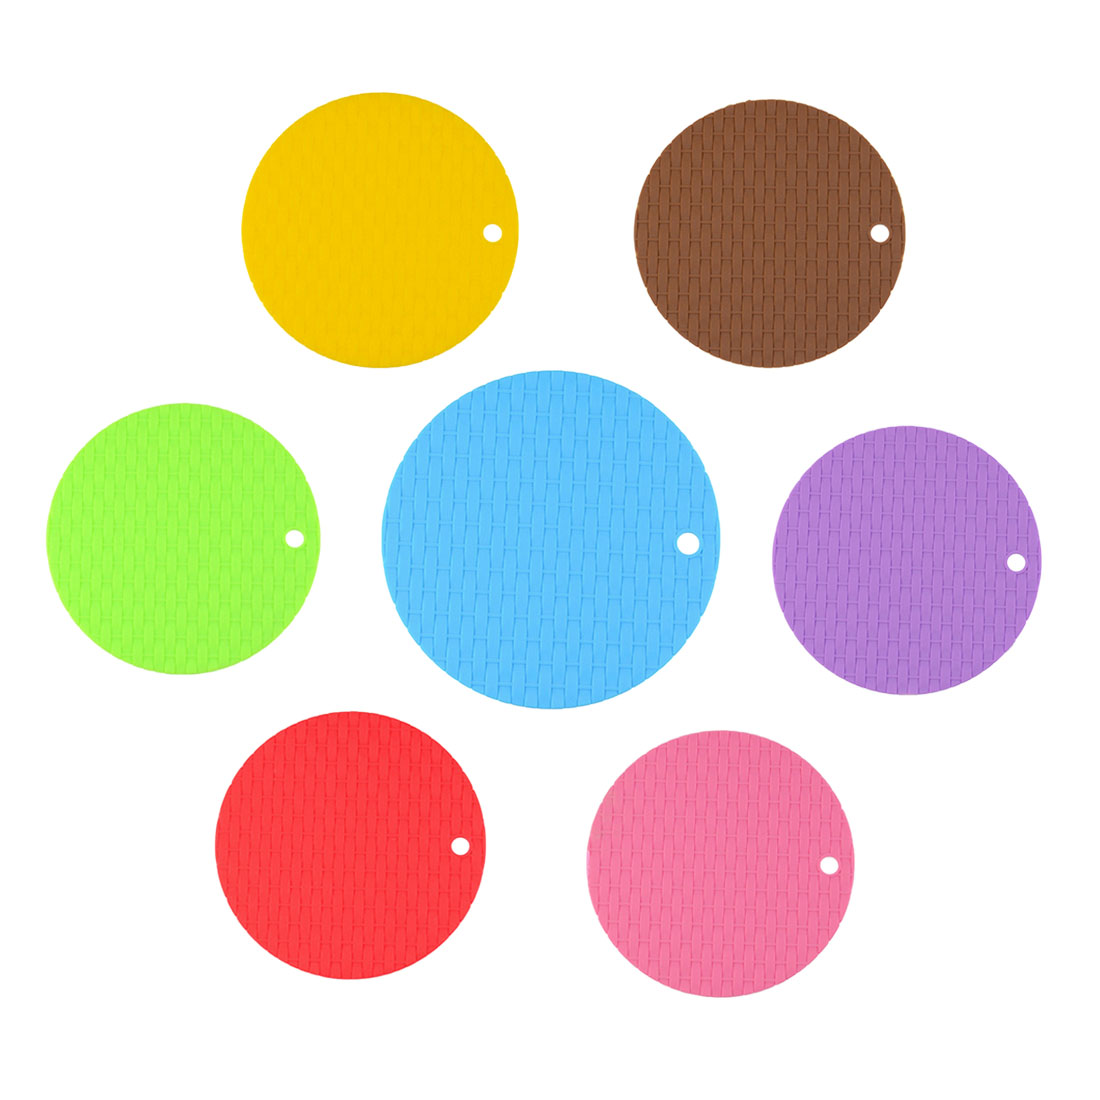 Top Sale 1Pc Round Non-Slip Heat Resistant Mat Coaster Cushion Placemat Pot Holder Silicone Table Mat Kitchen Accessories